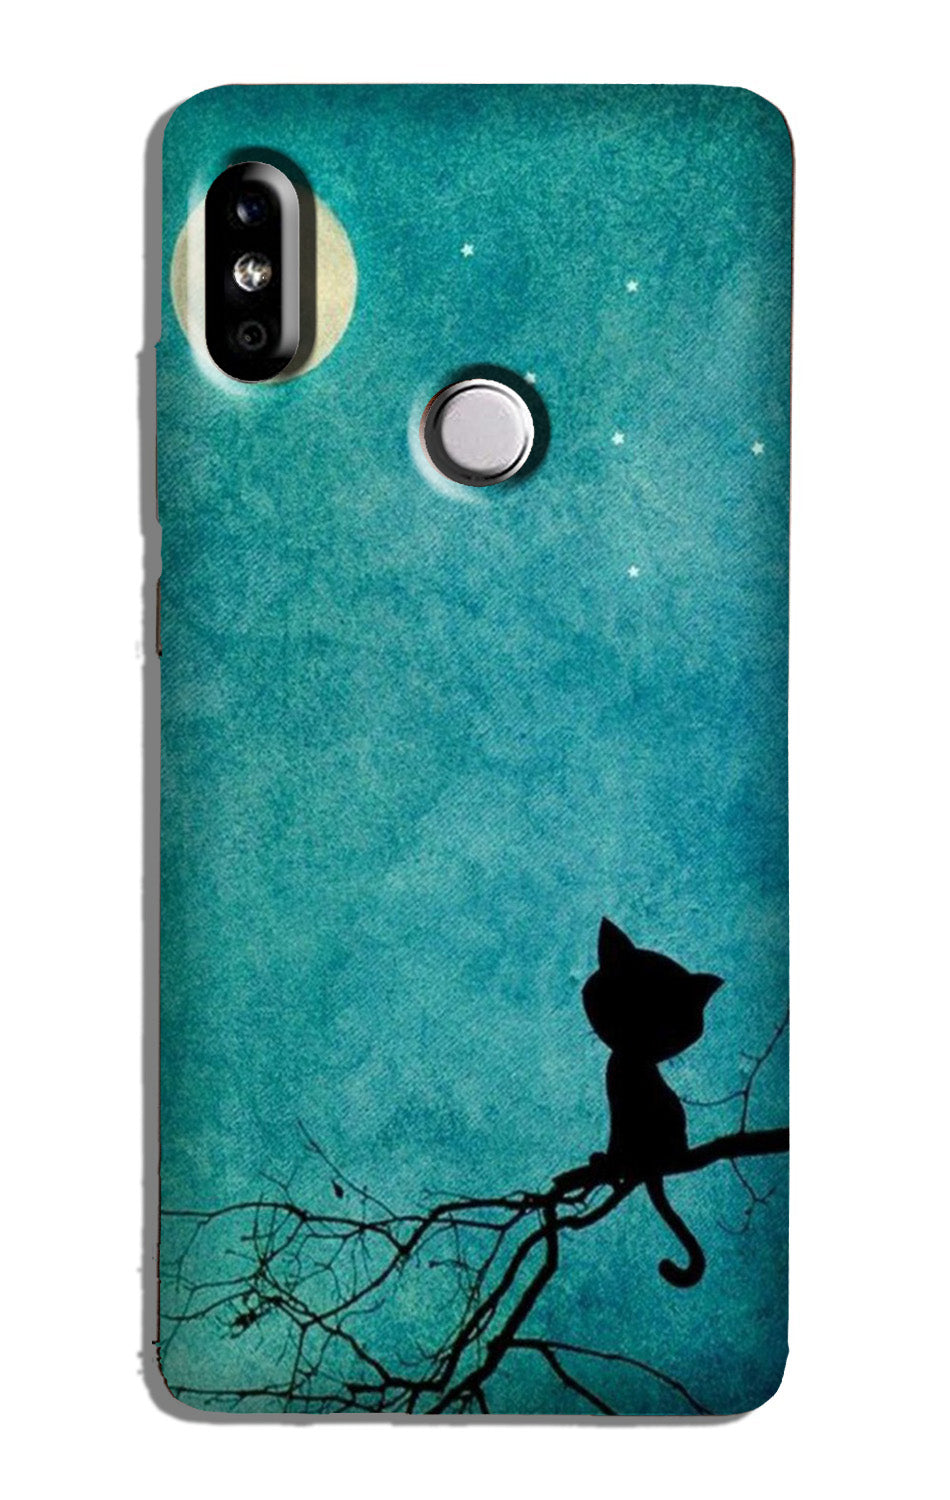 Moon cat Case for Redmi 6 Pro